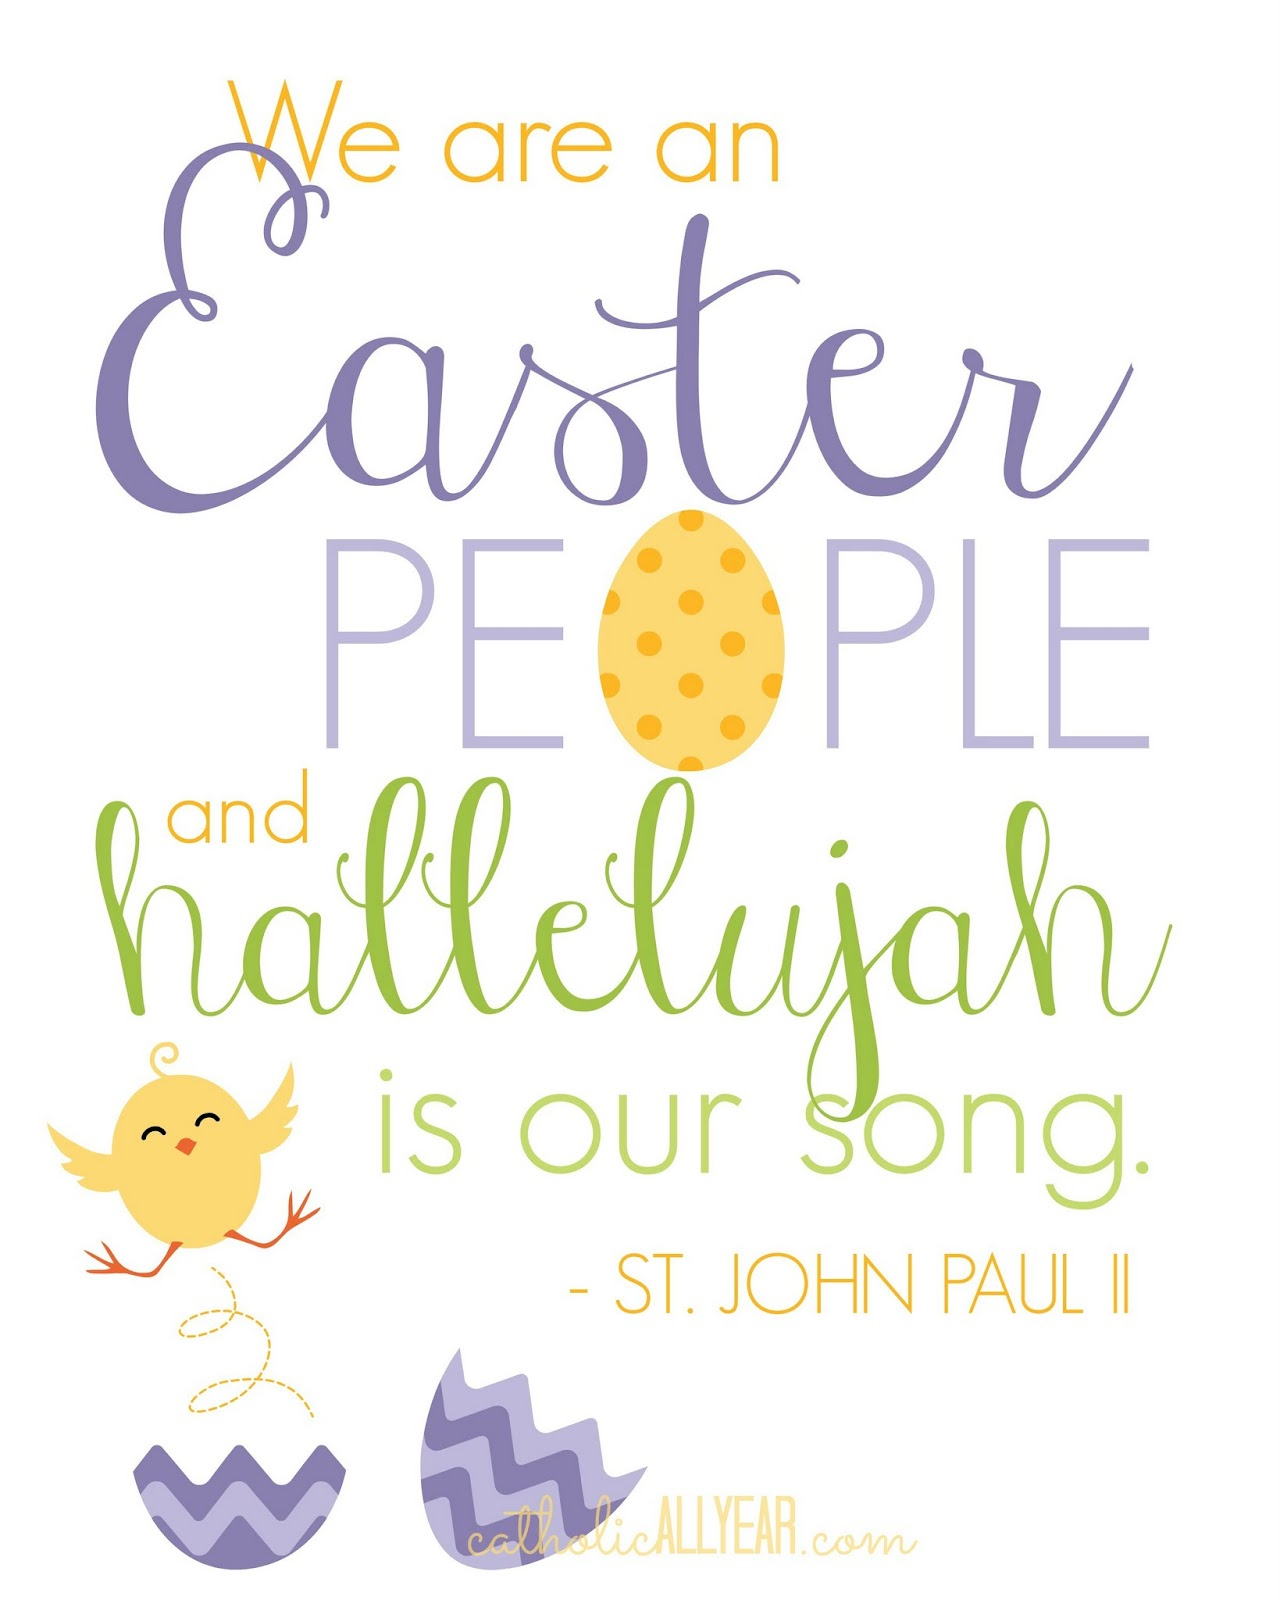 Quotes From The Bible About Easter: Catholic All Year: A Little Peek Inside Our Easter Baskets